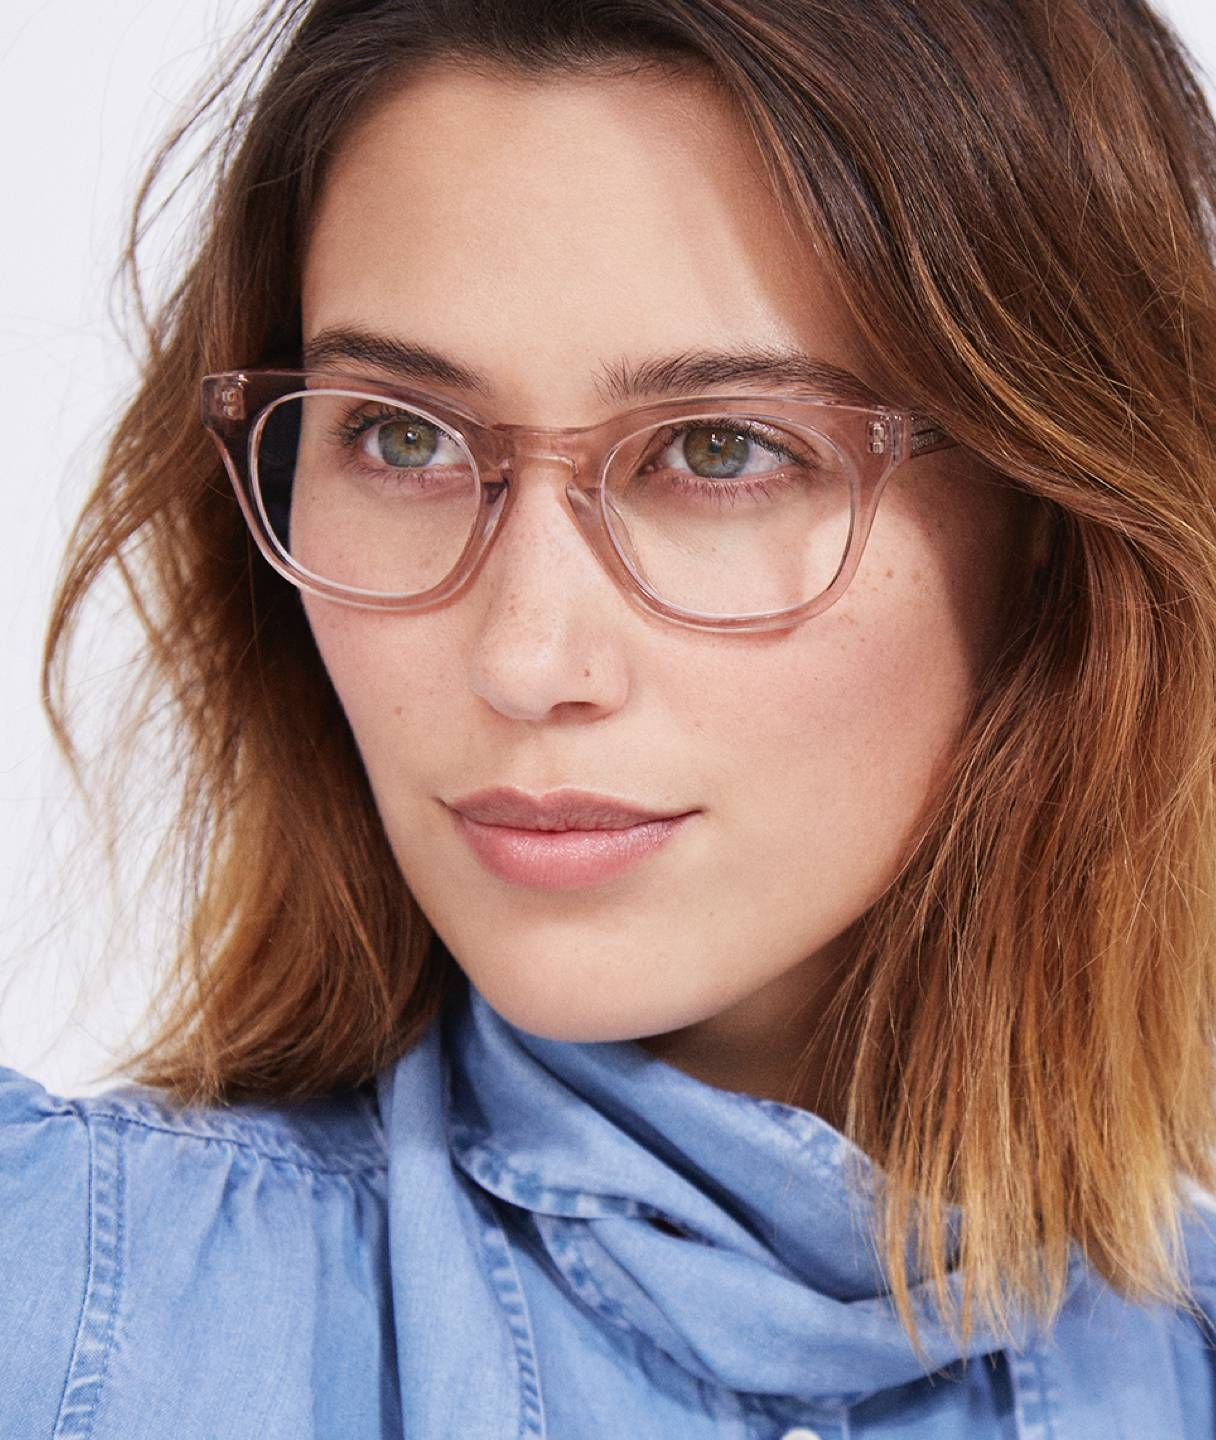 772b5488b8 Warby Parker - Blush Toned Glasses. j adore!